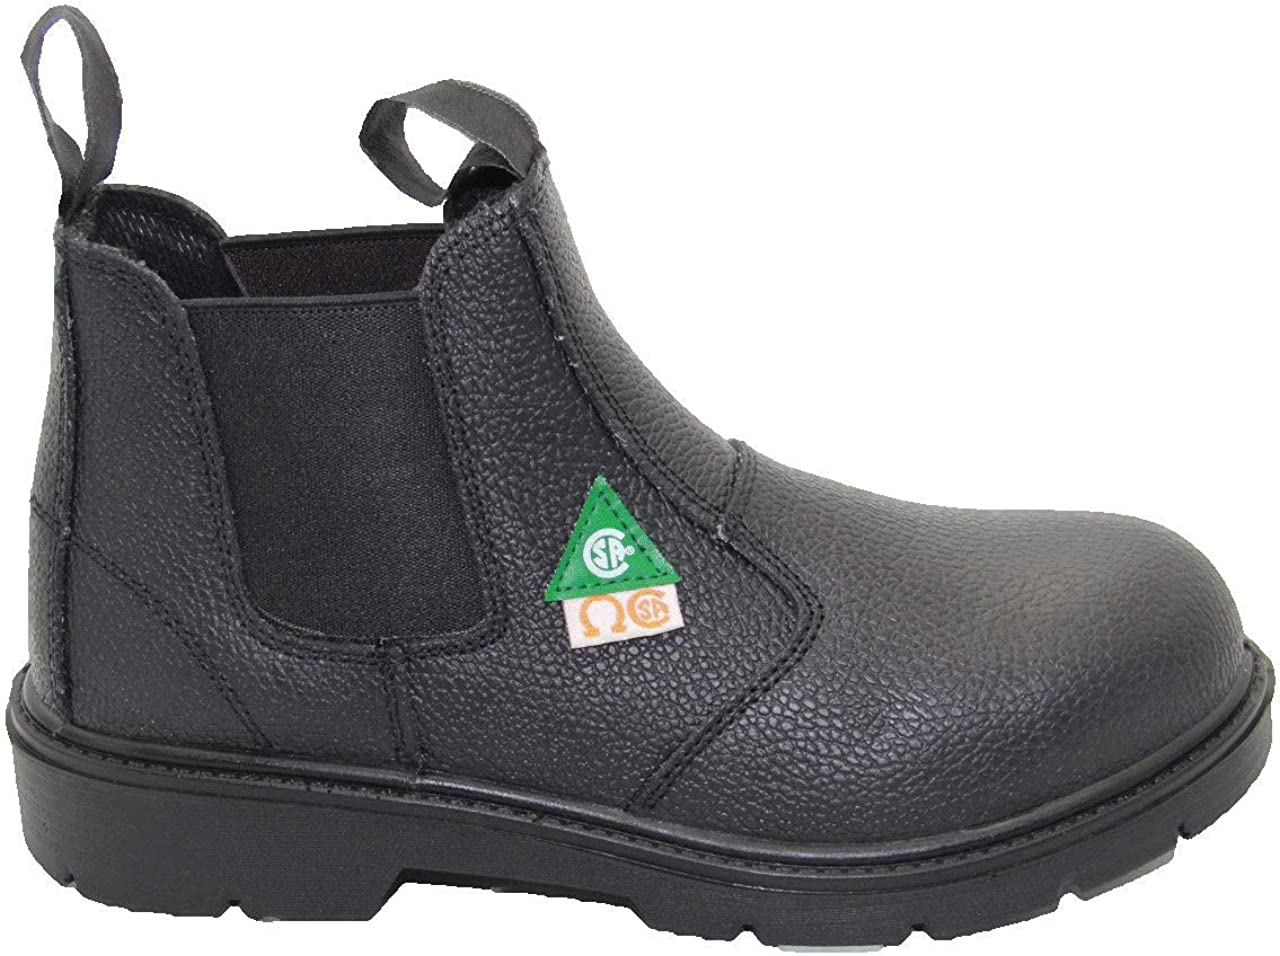 D9 CSA Approved Safety Shoes